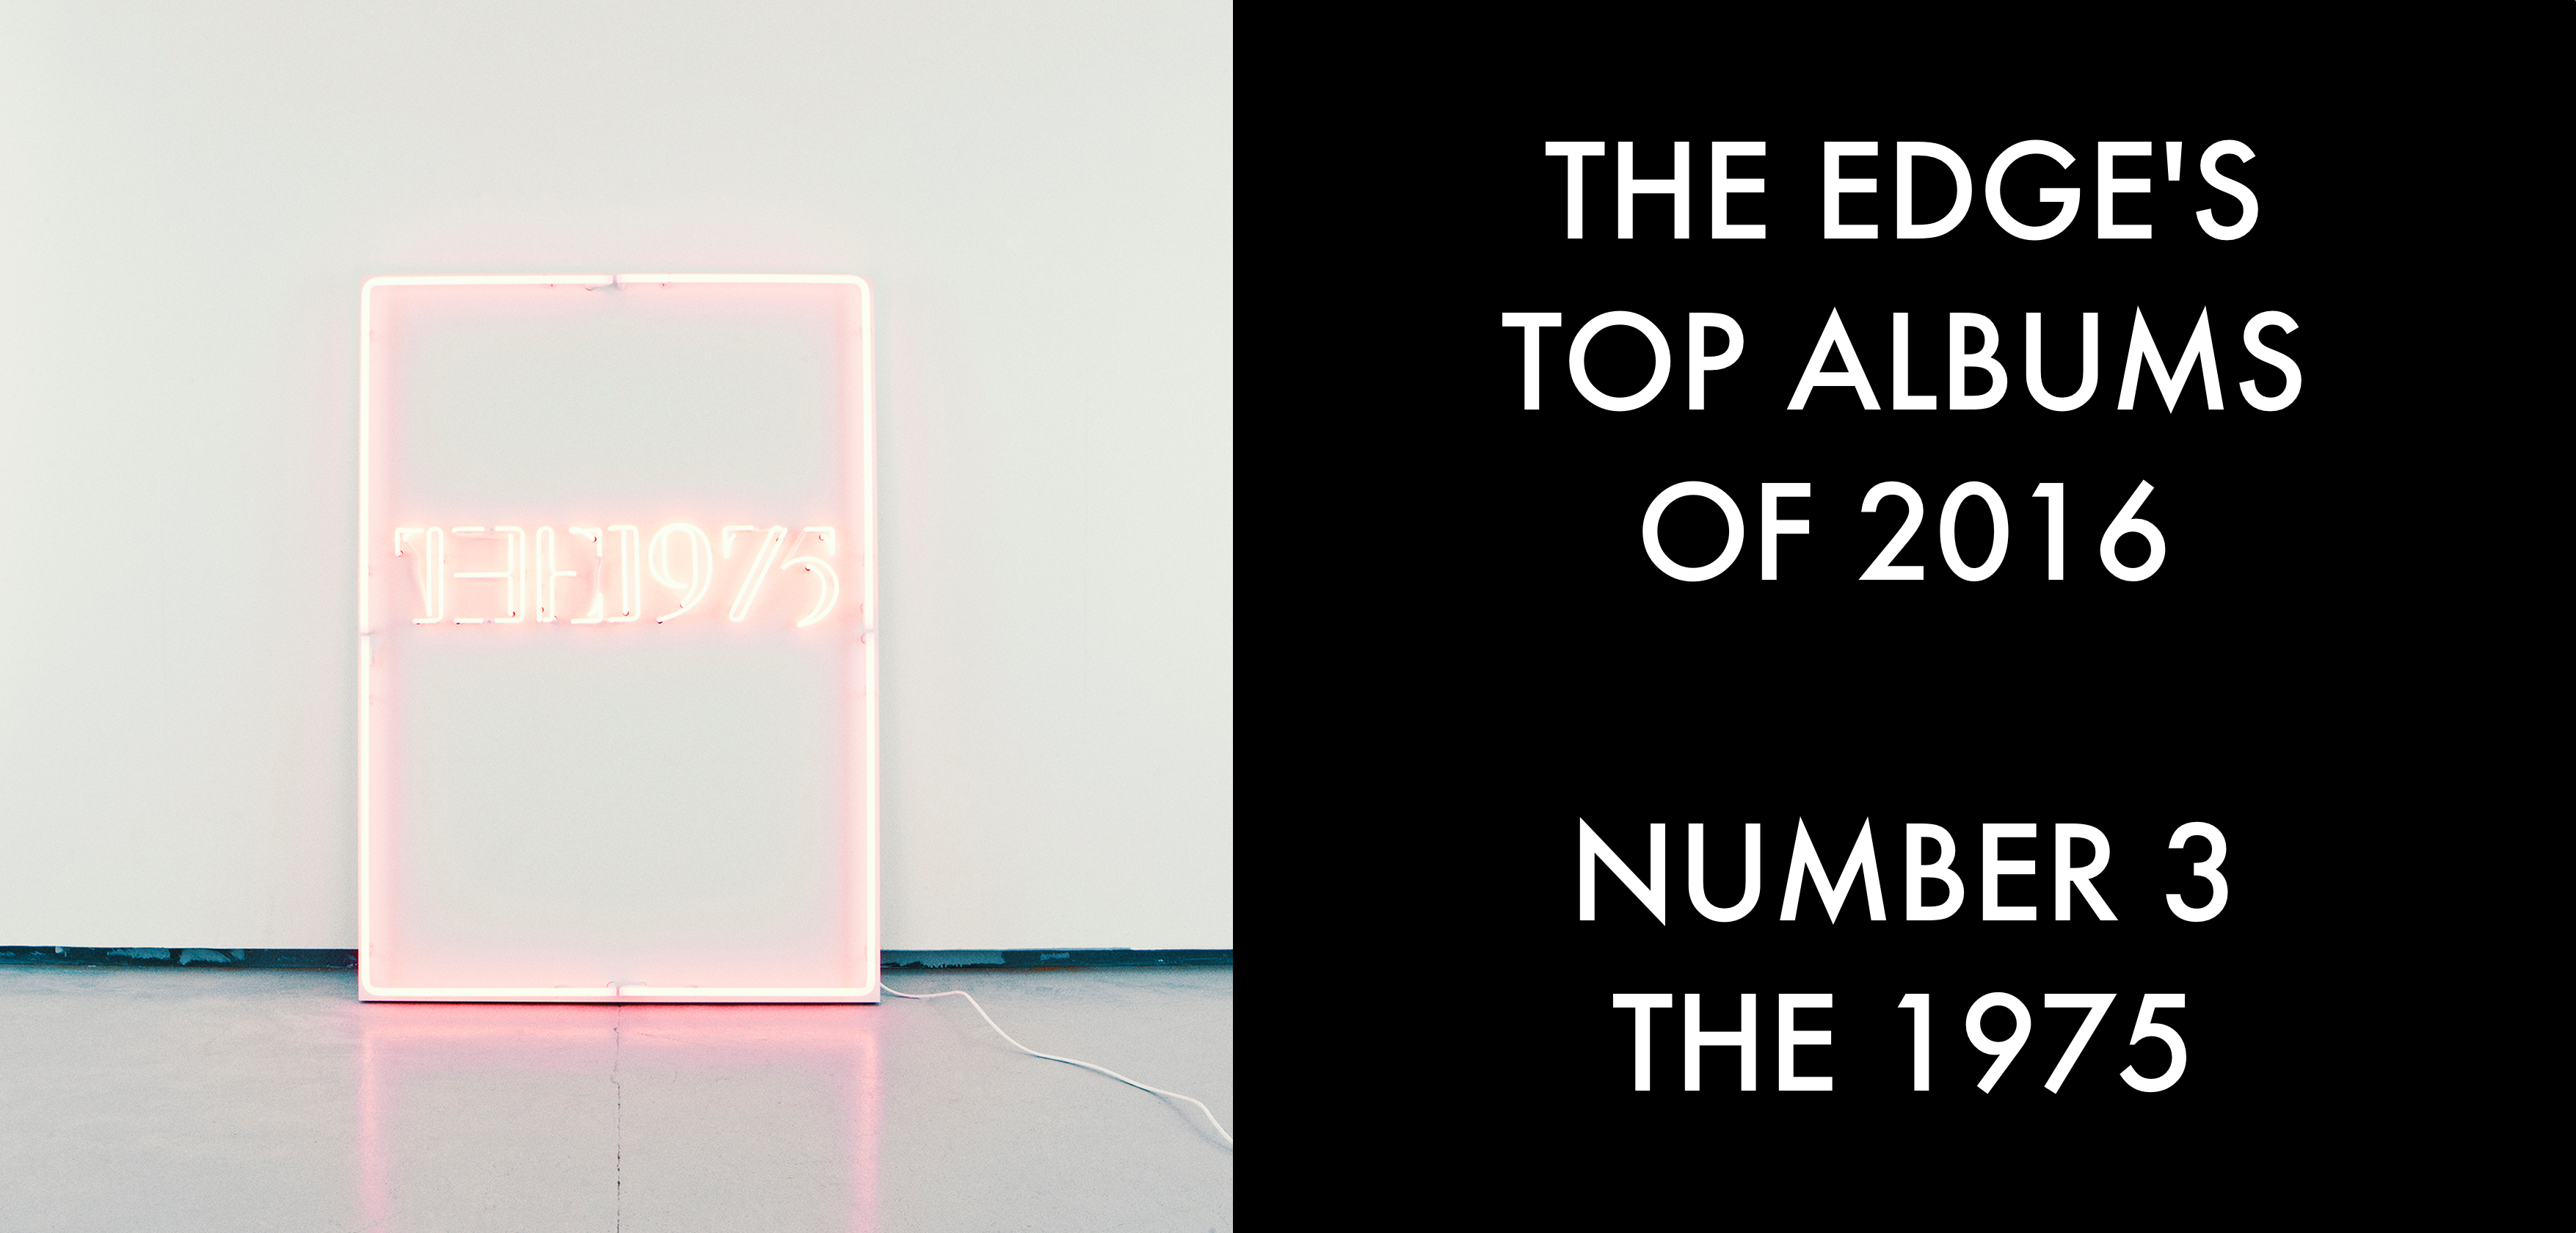 The Edges Top Albums Of 2016 The 1975 I Like It When You Sleep